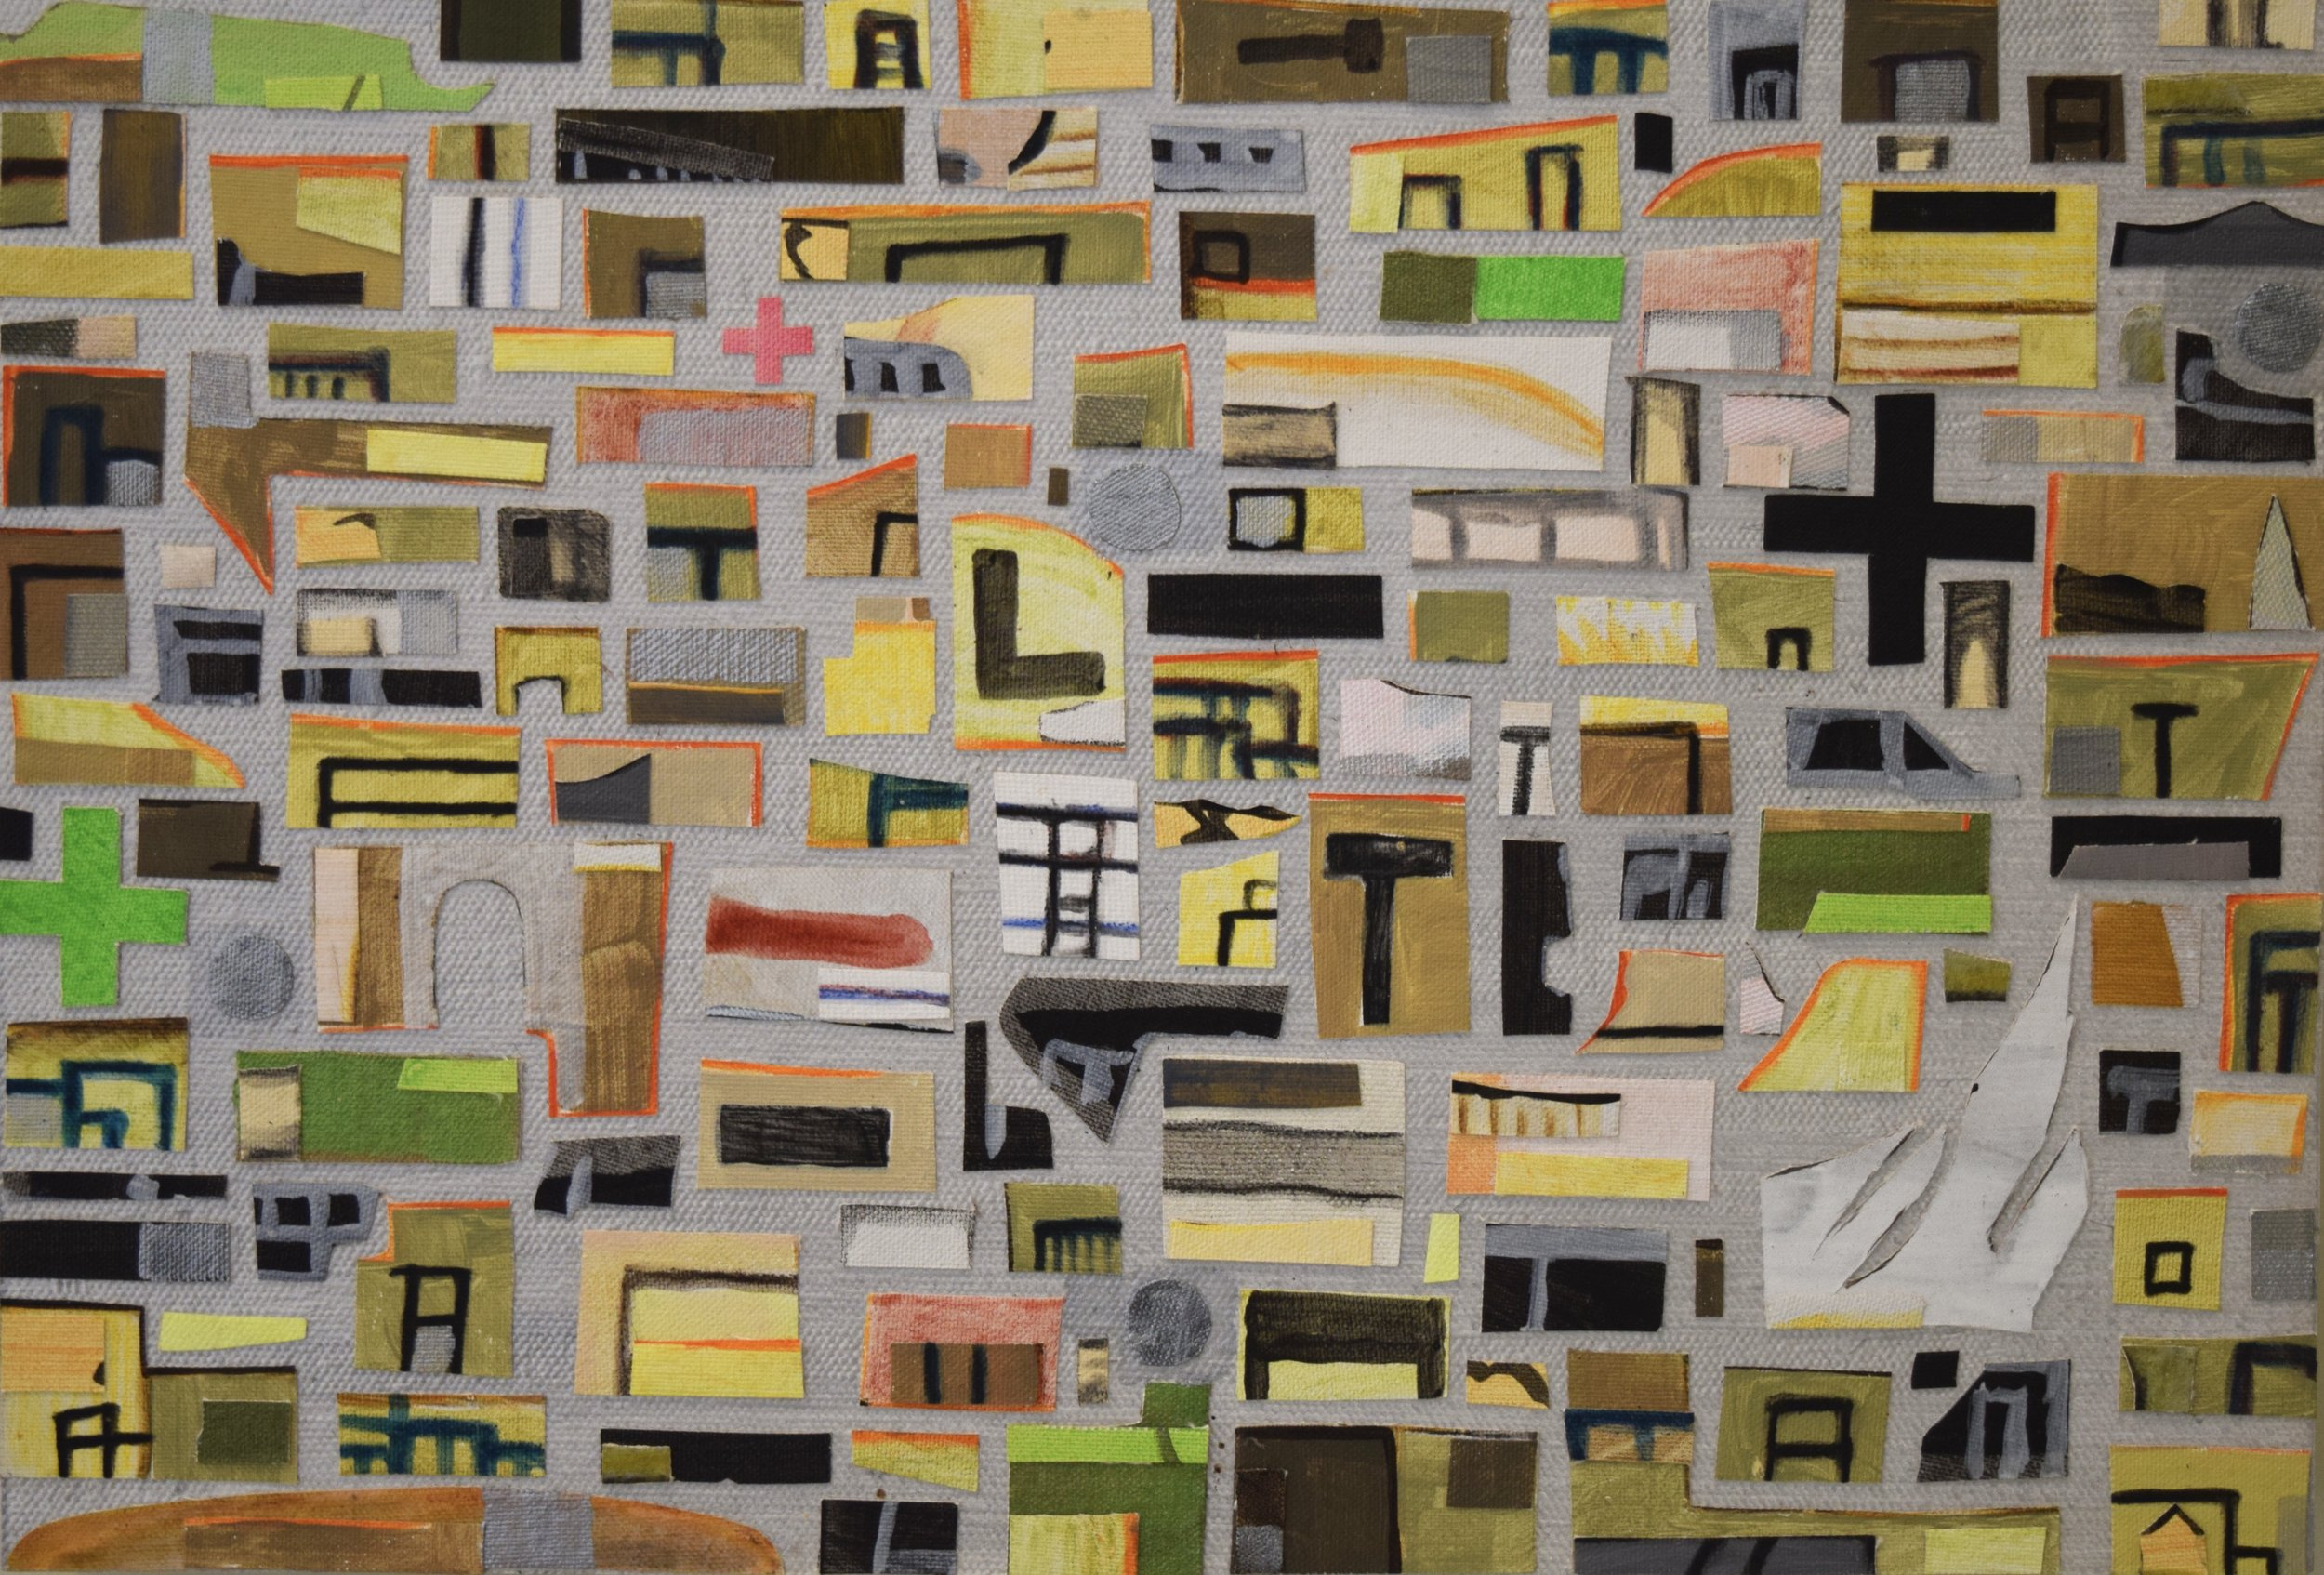 City fragments , Andrew Powell, acrylic paint, canvas collage on panel, 2015-2018